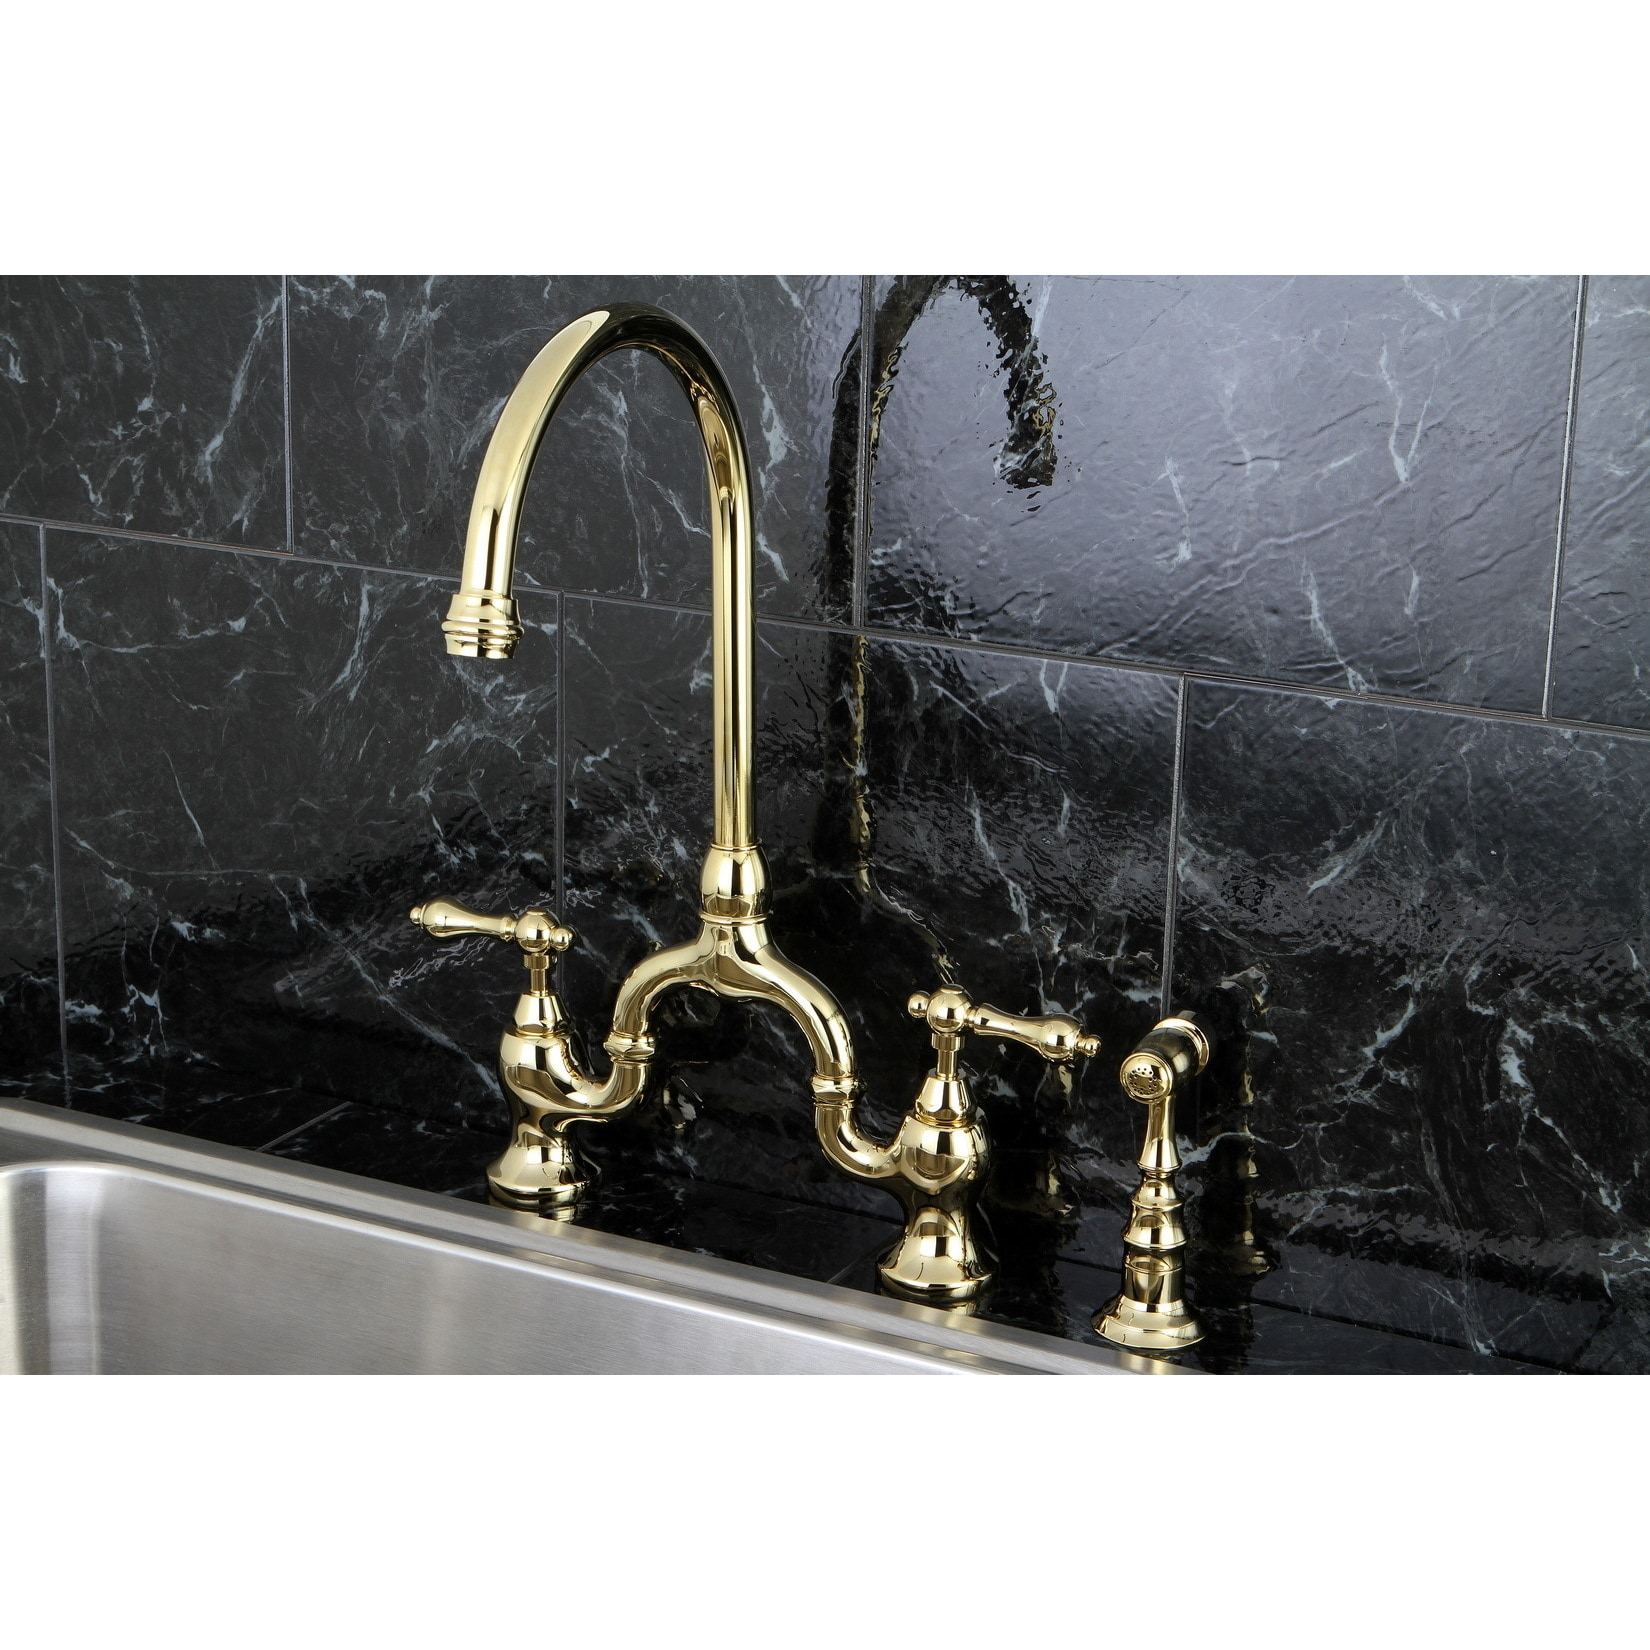 Vintage High spout Polished Brass Bridge Kitchen Faucet with Side